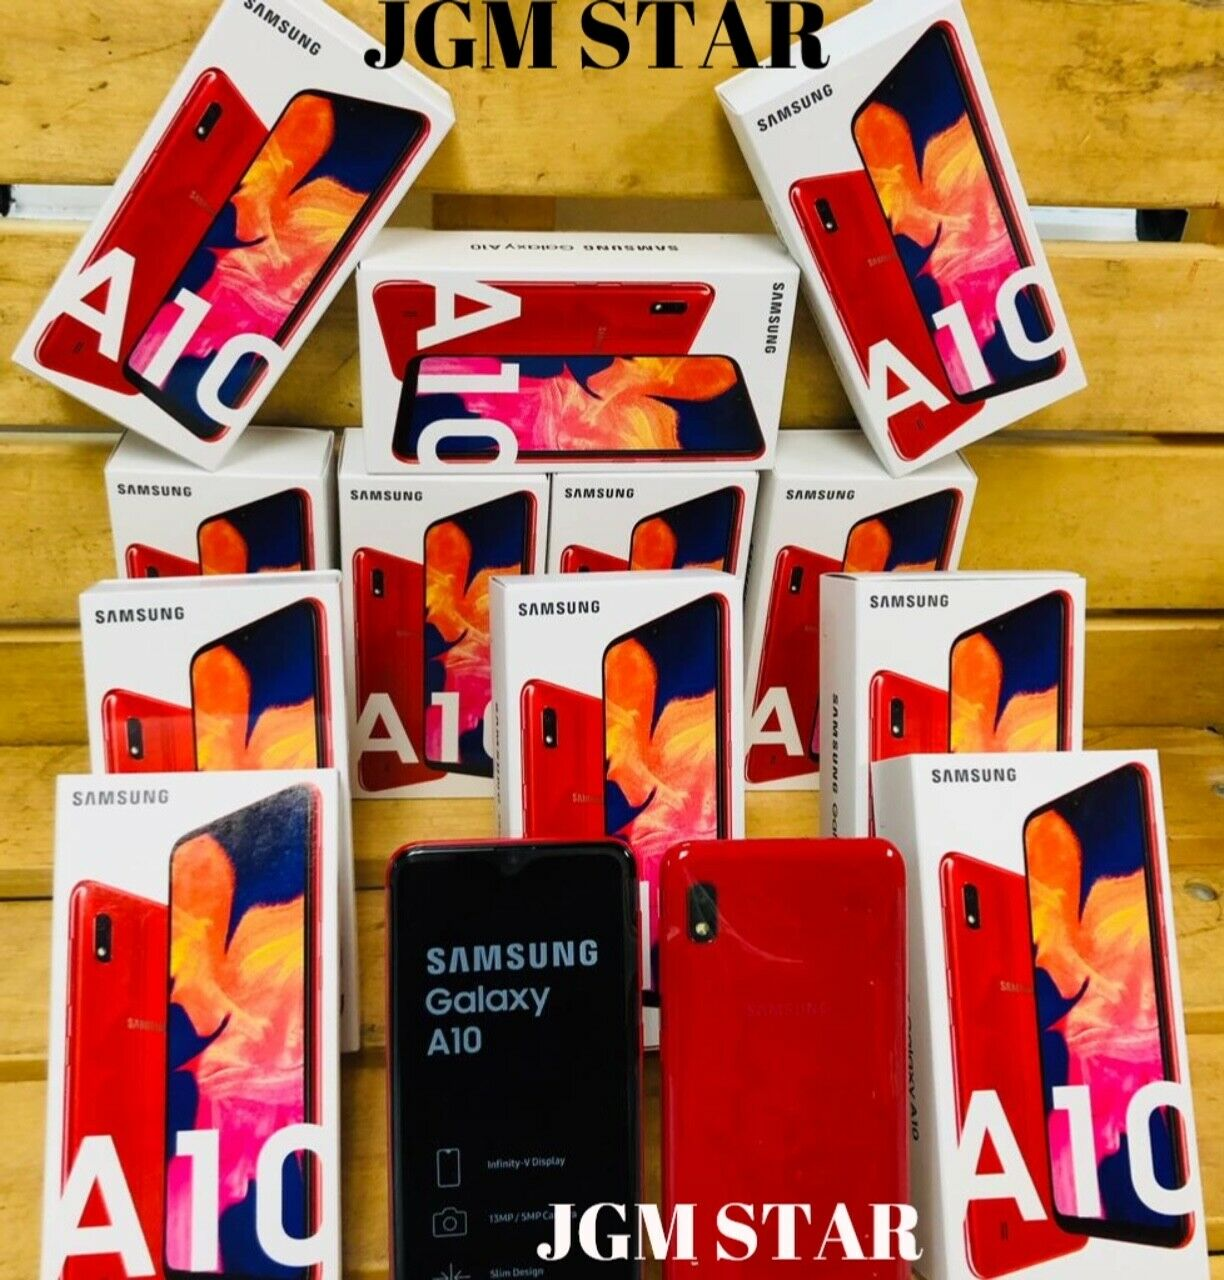 Android Phone - SAMSUNG GALAXY A10 32GB ( A105 ) RED FACT UNLOCKED 6.2 INCH LCD NEW 2019 STYLE